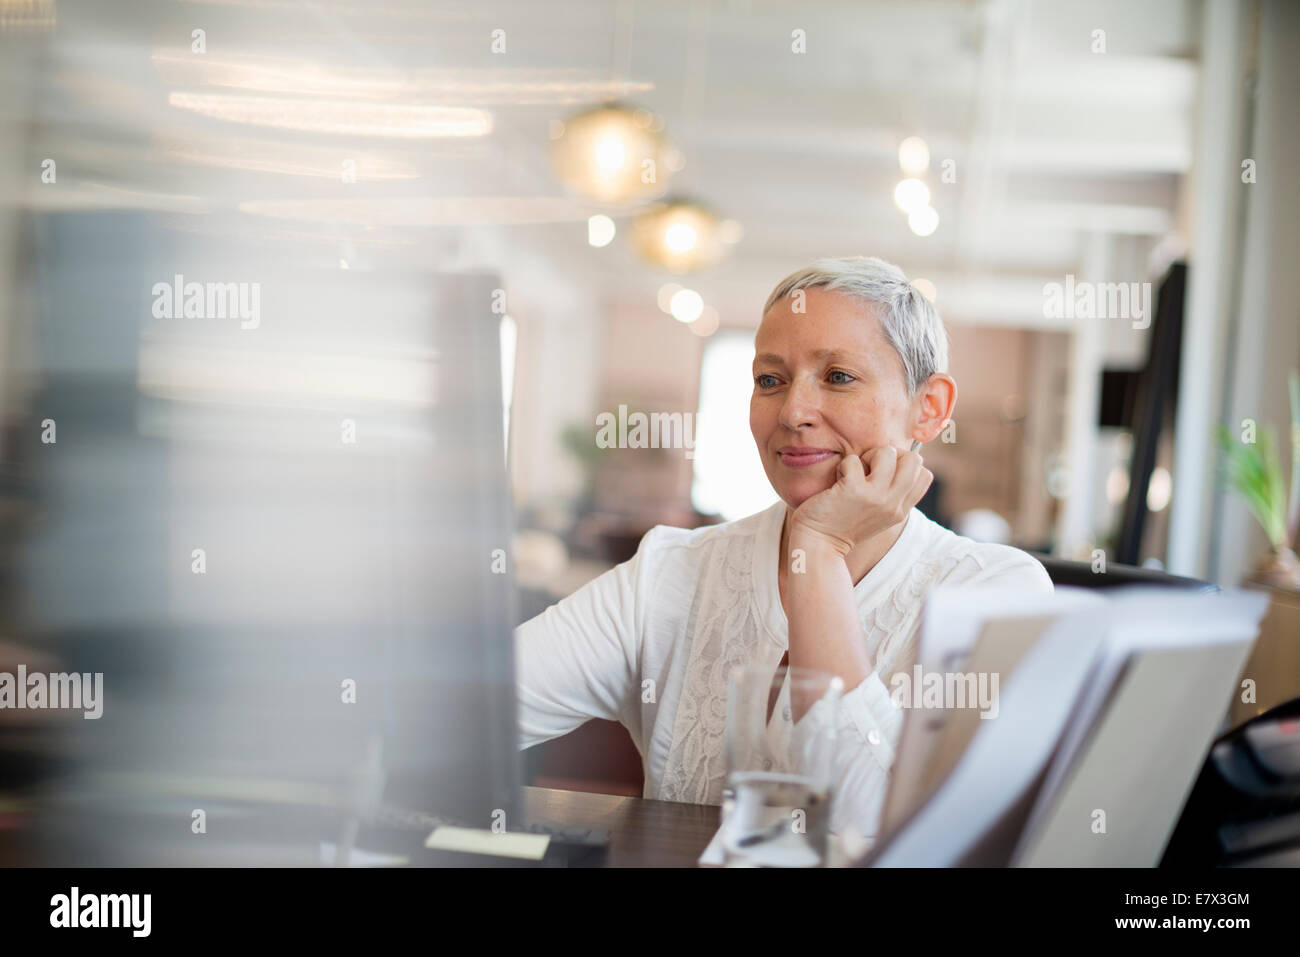 Office life. A woman with her chin resting on her hand using a computer. - Stock Image